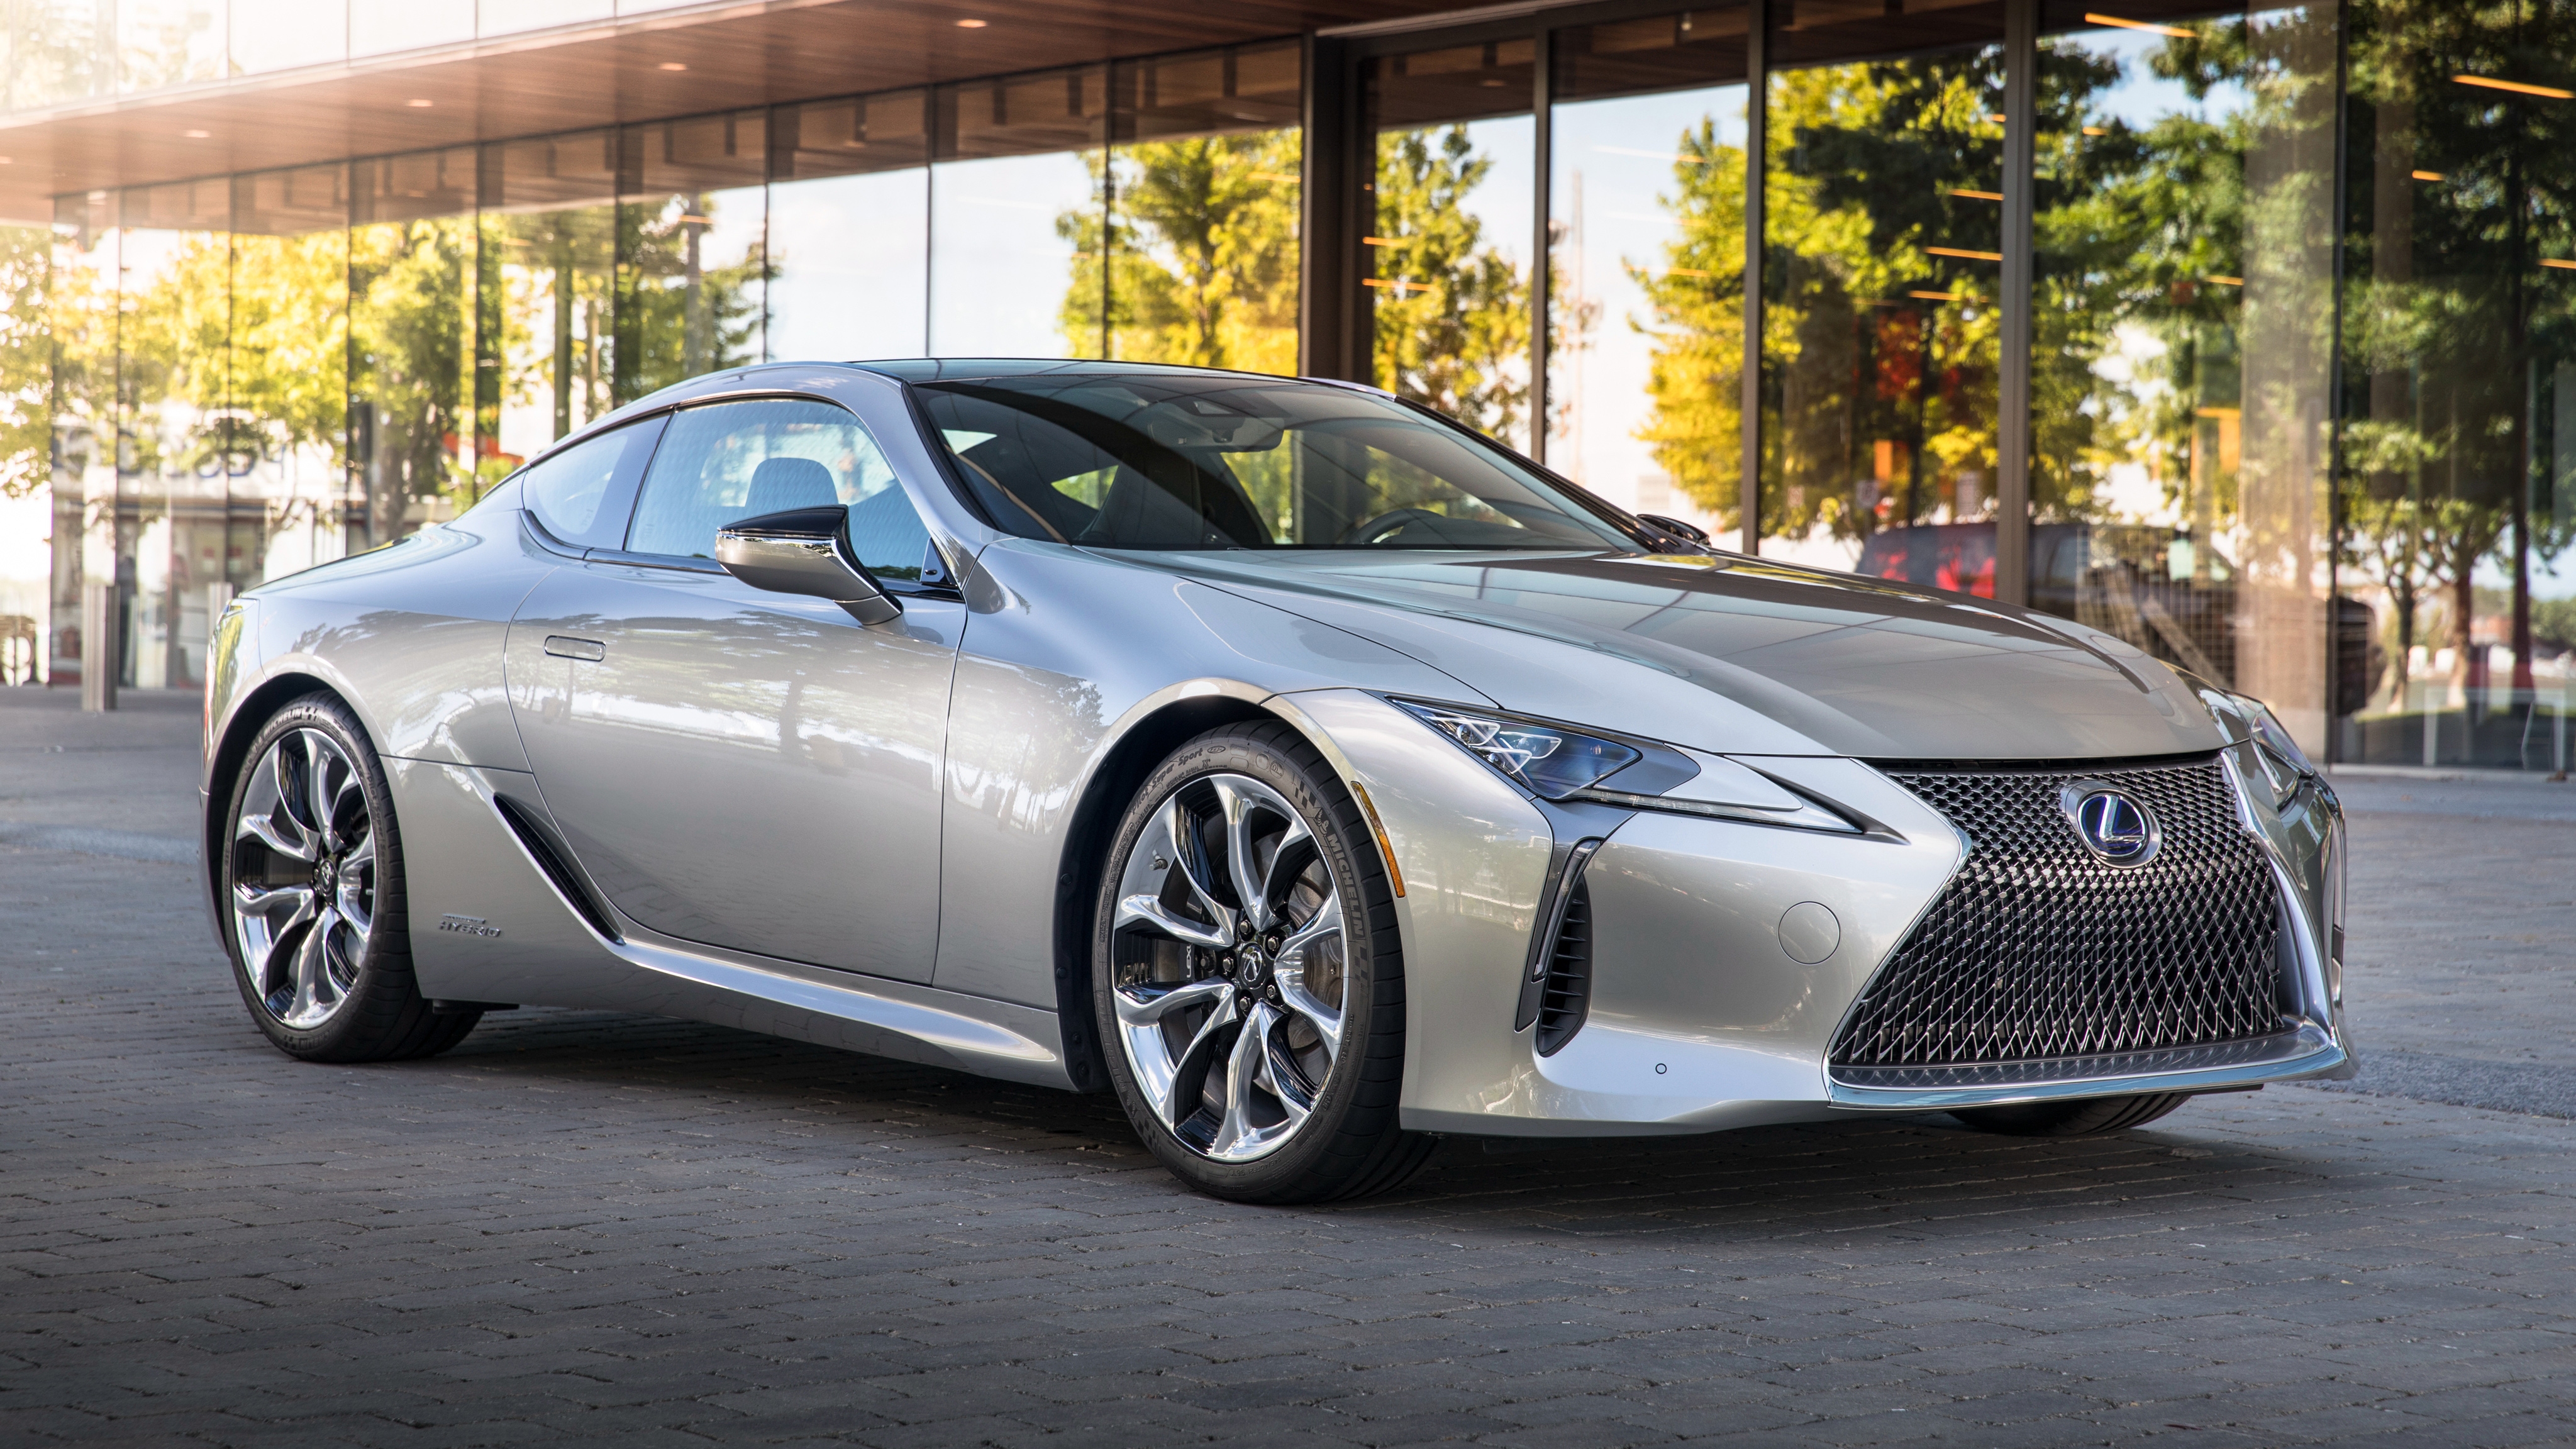 2018 Lexus LC 500h 4K 2 Wallpaper | HD Car Wallpapers | ID ...